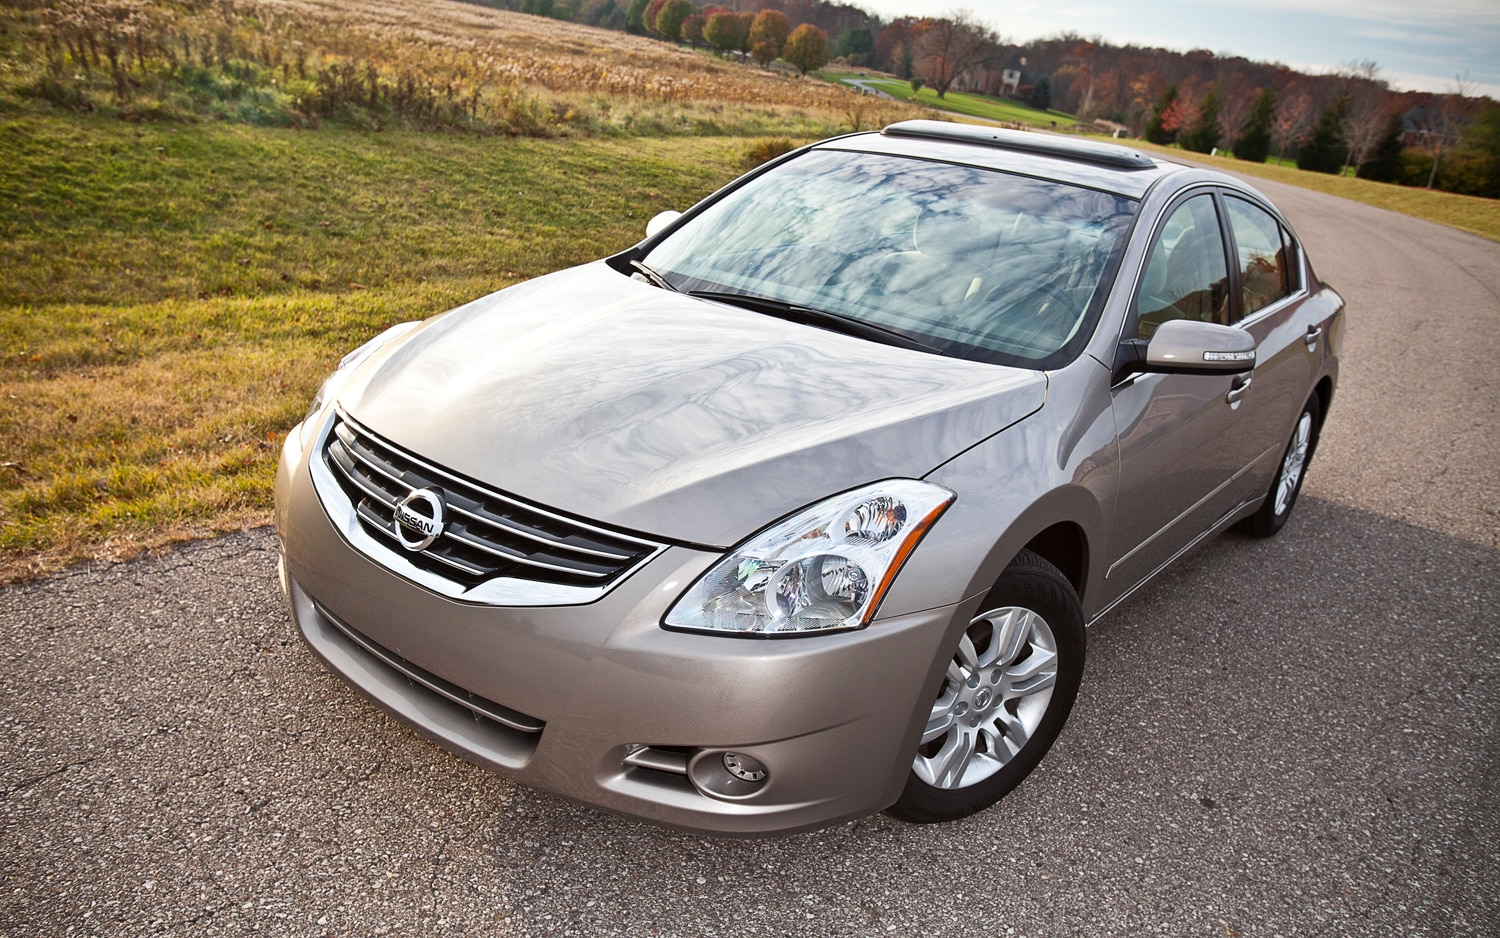 2012 Nissan Altima 2 5 S Front Left View1